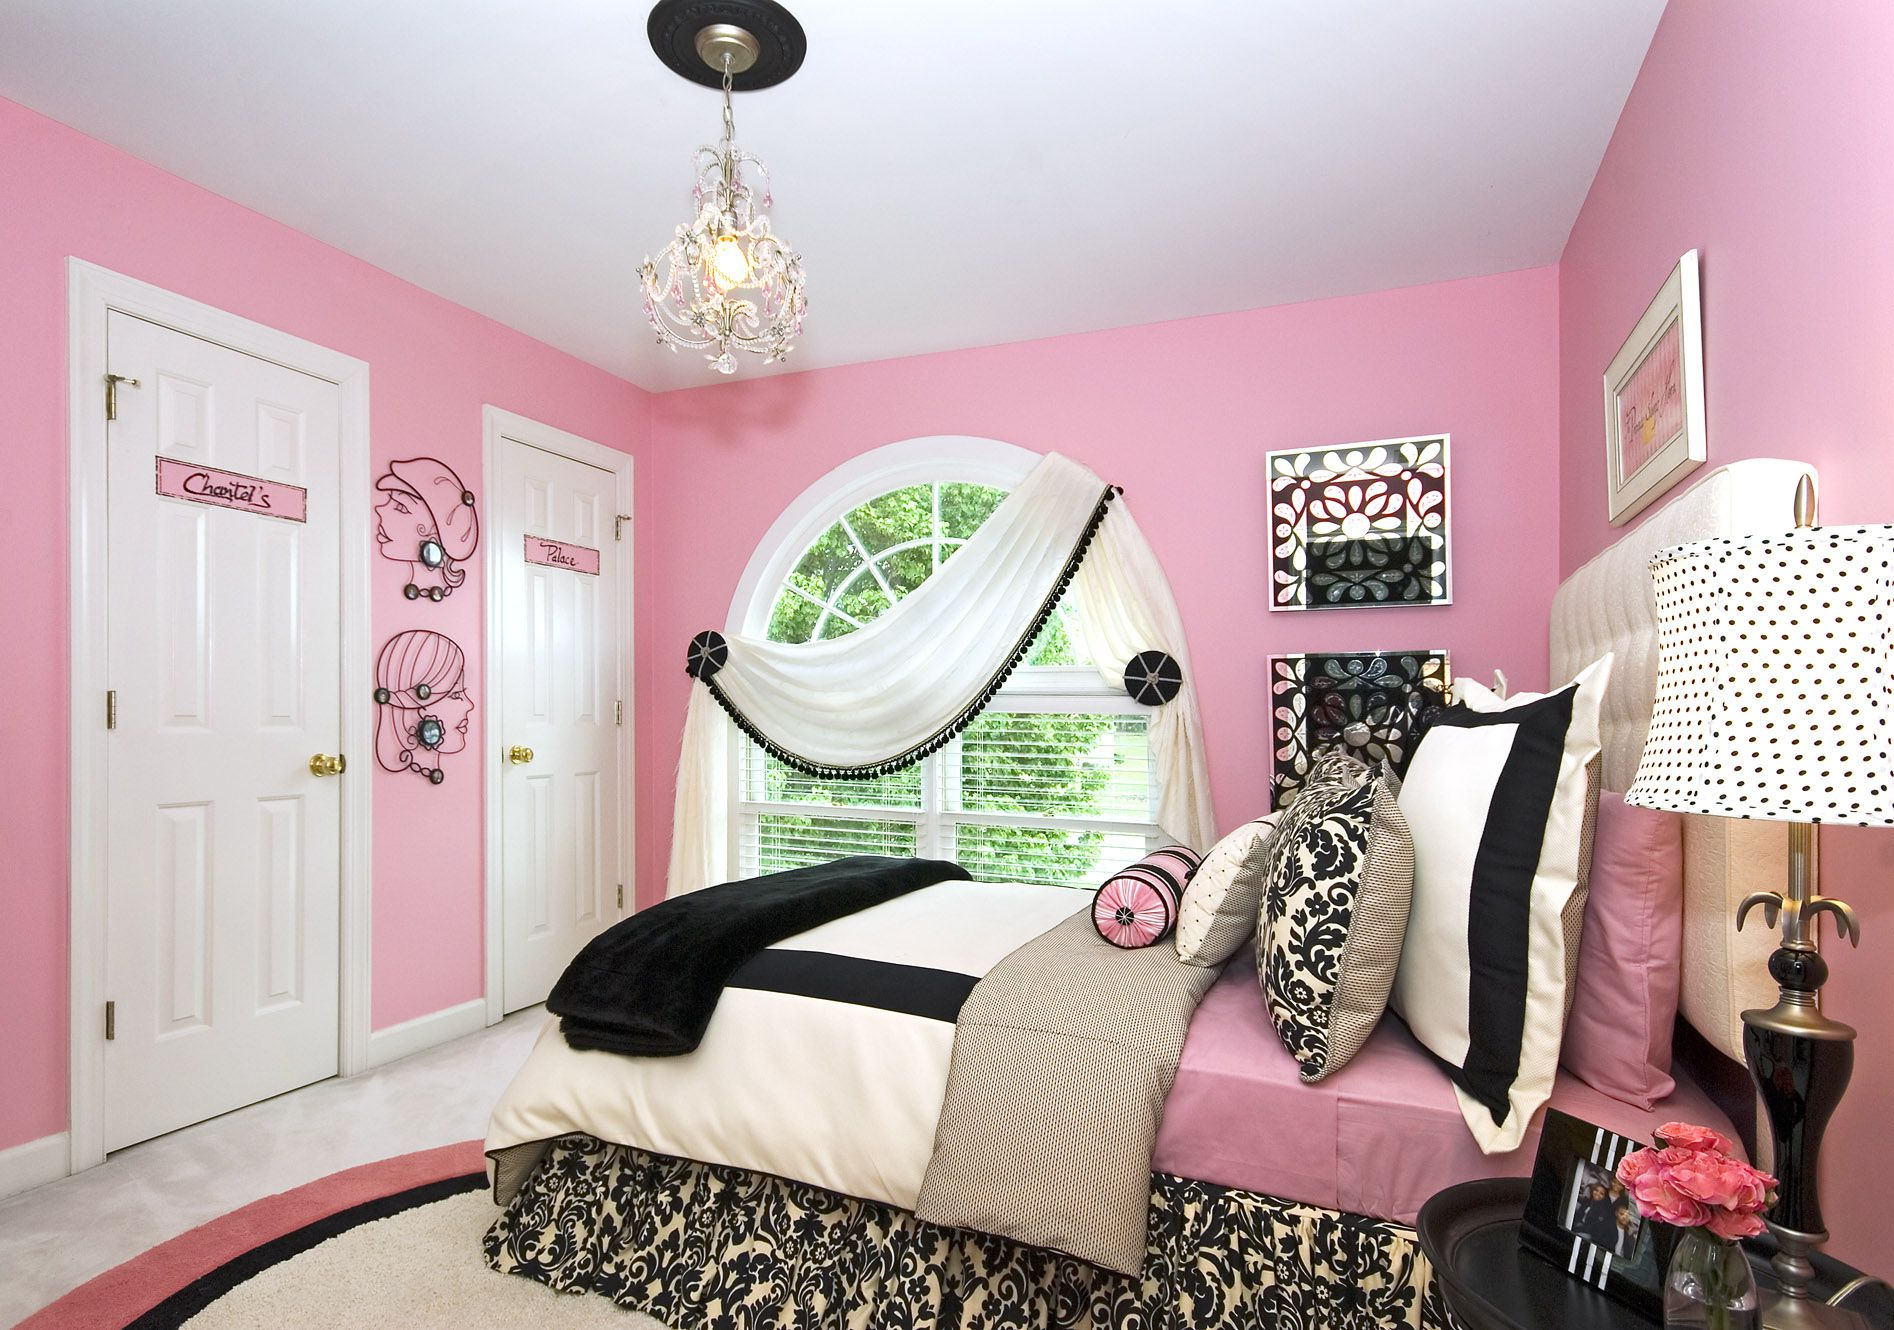 Charmant Place Gorgeous Bed Inside Cute Girls Bedroom Decor With Black Nightstands  And Pink Painted Wall